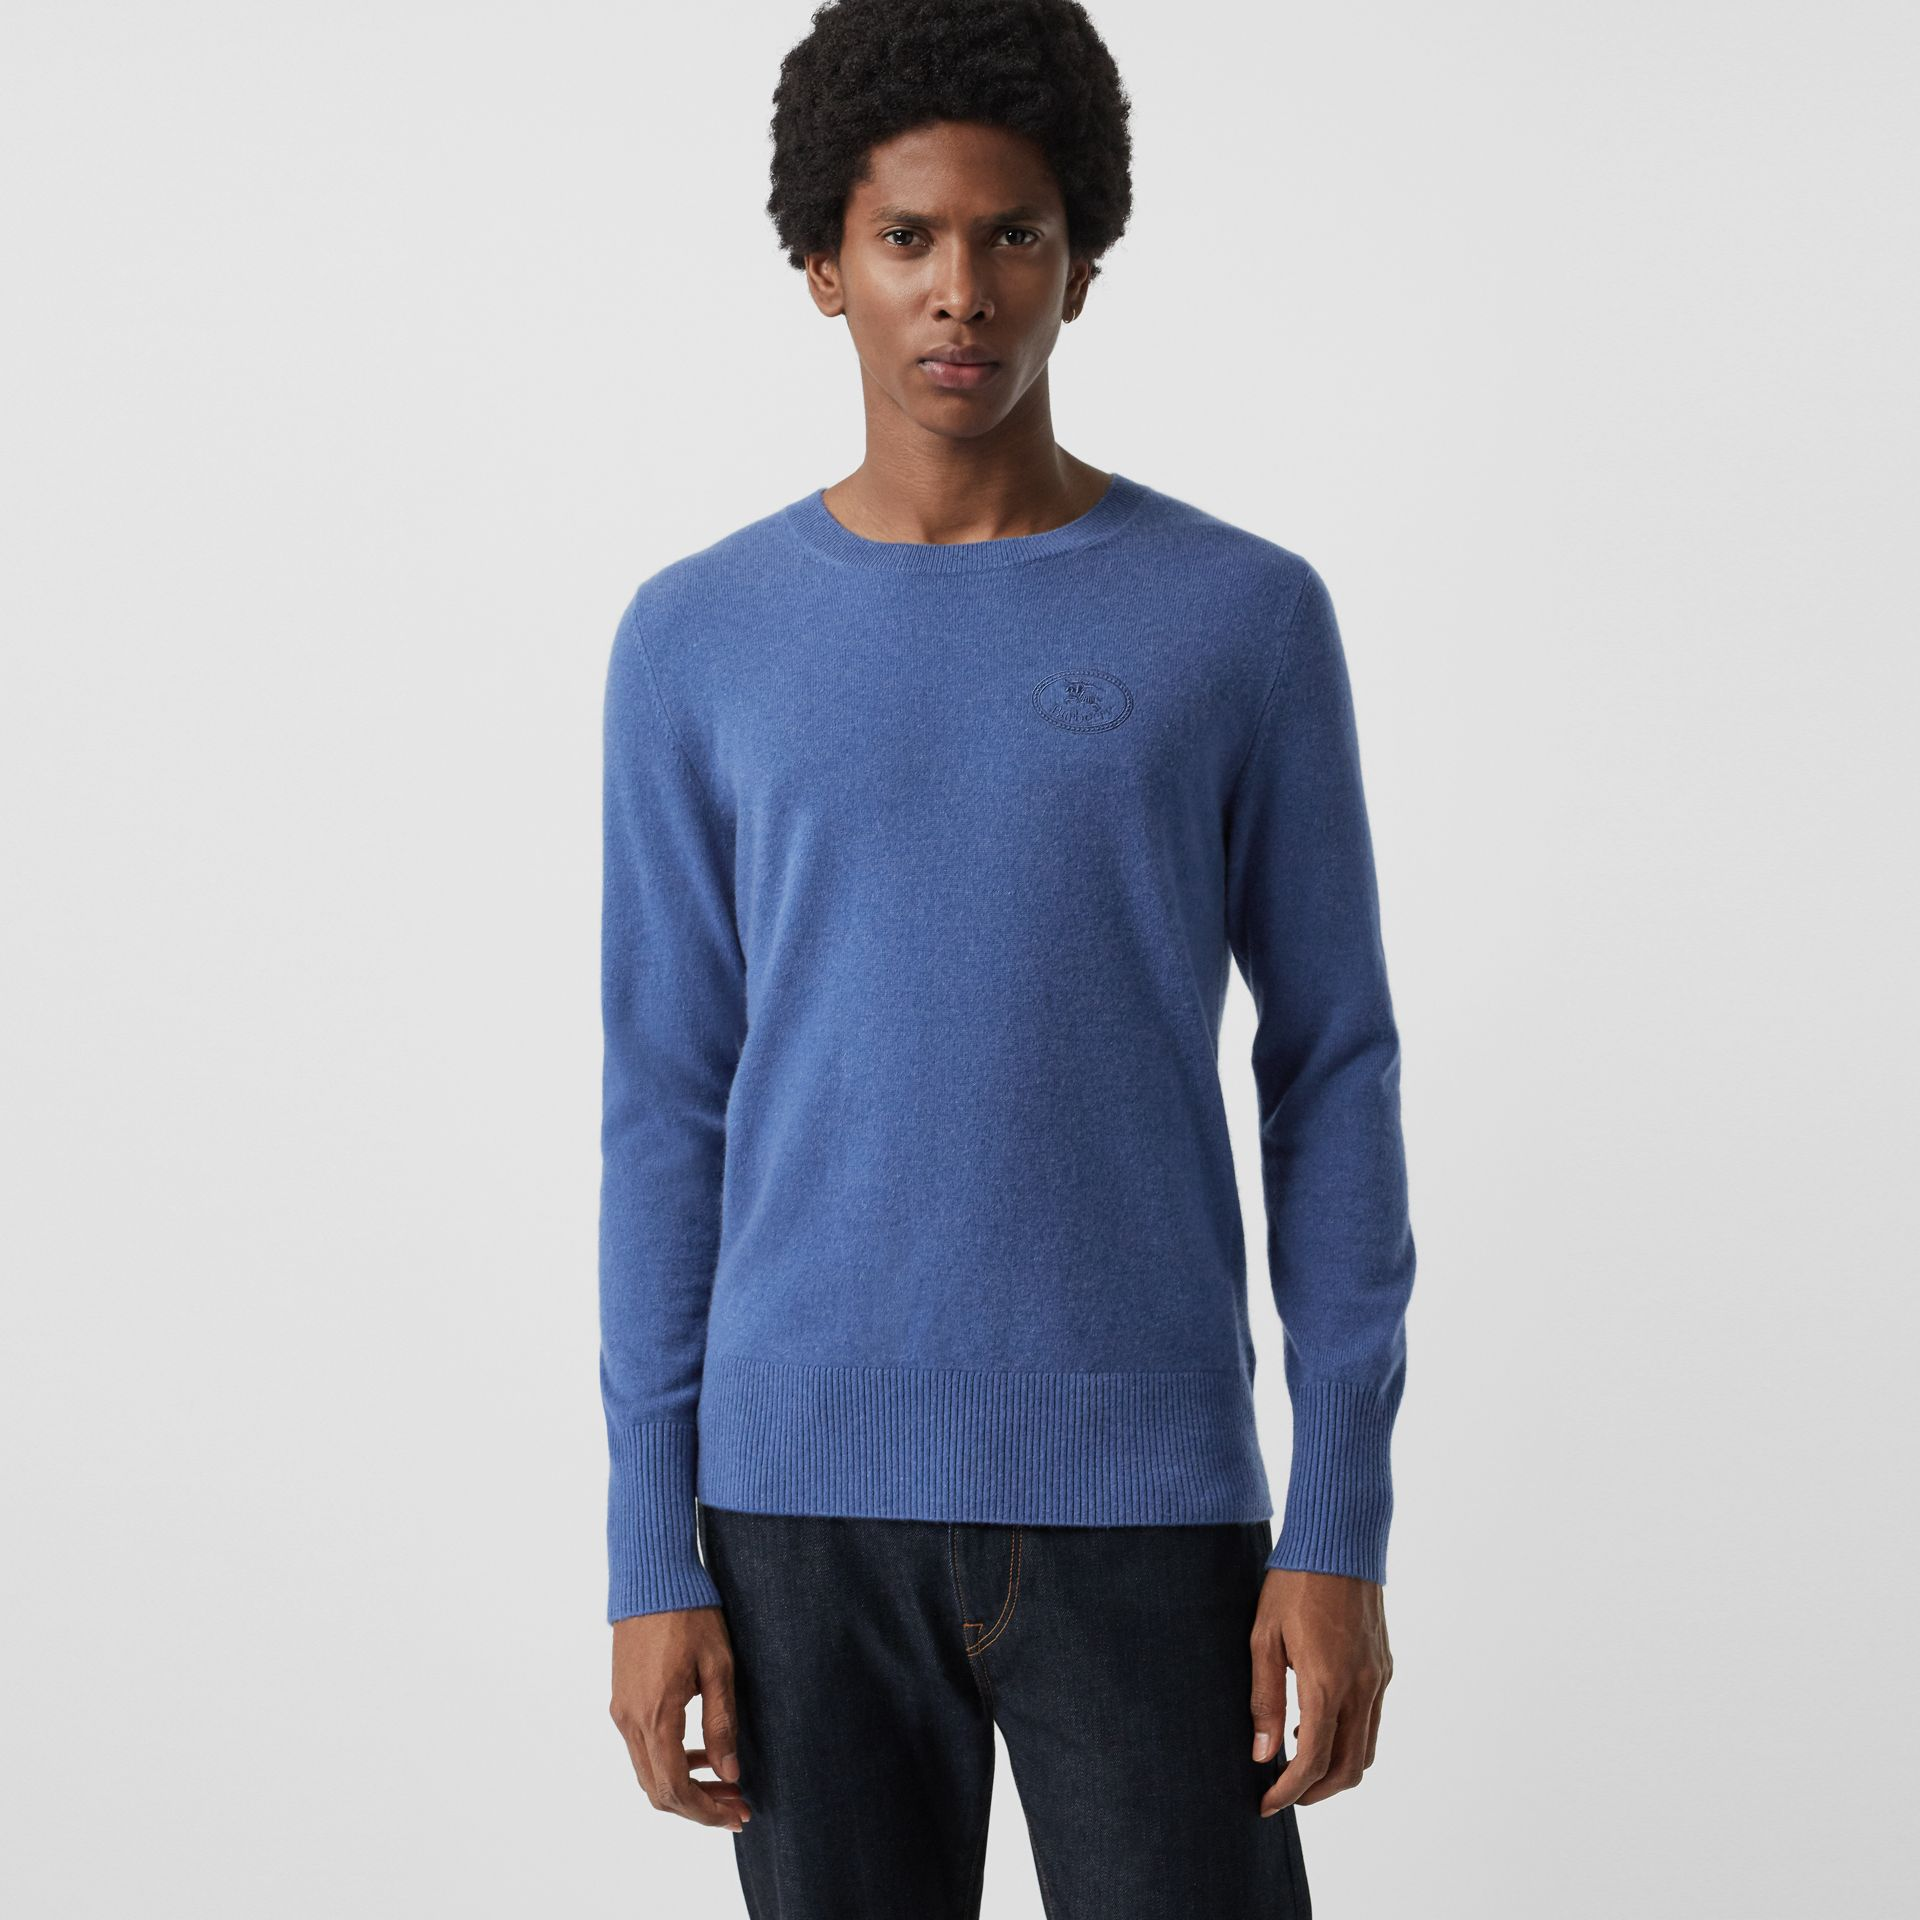 Embroidered Logo Cashmere Sweater in Dusty Blue - Men | Burberry - gallery image 0